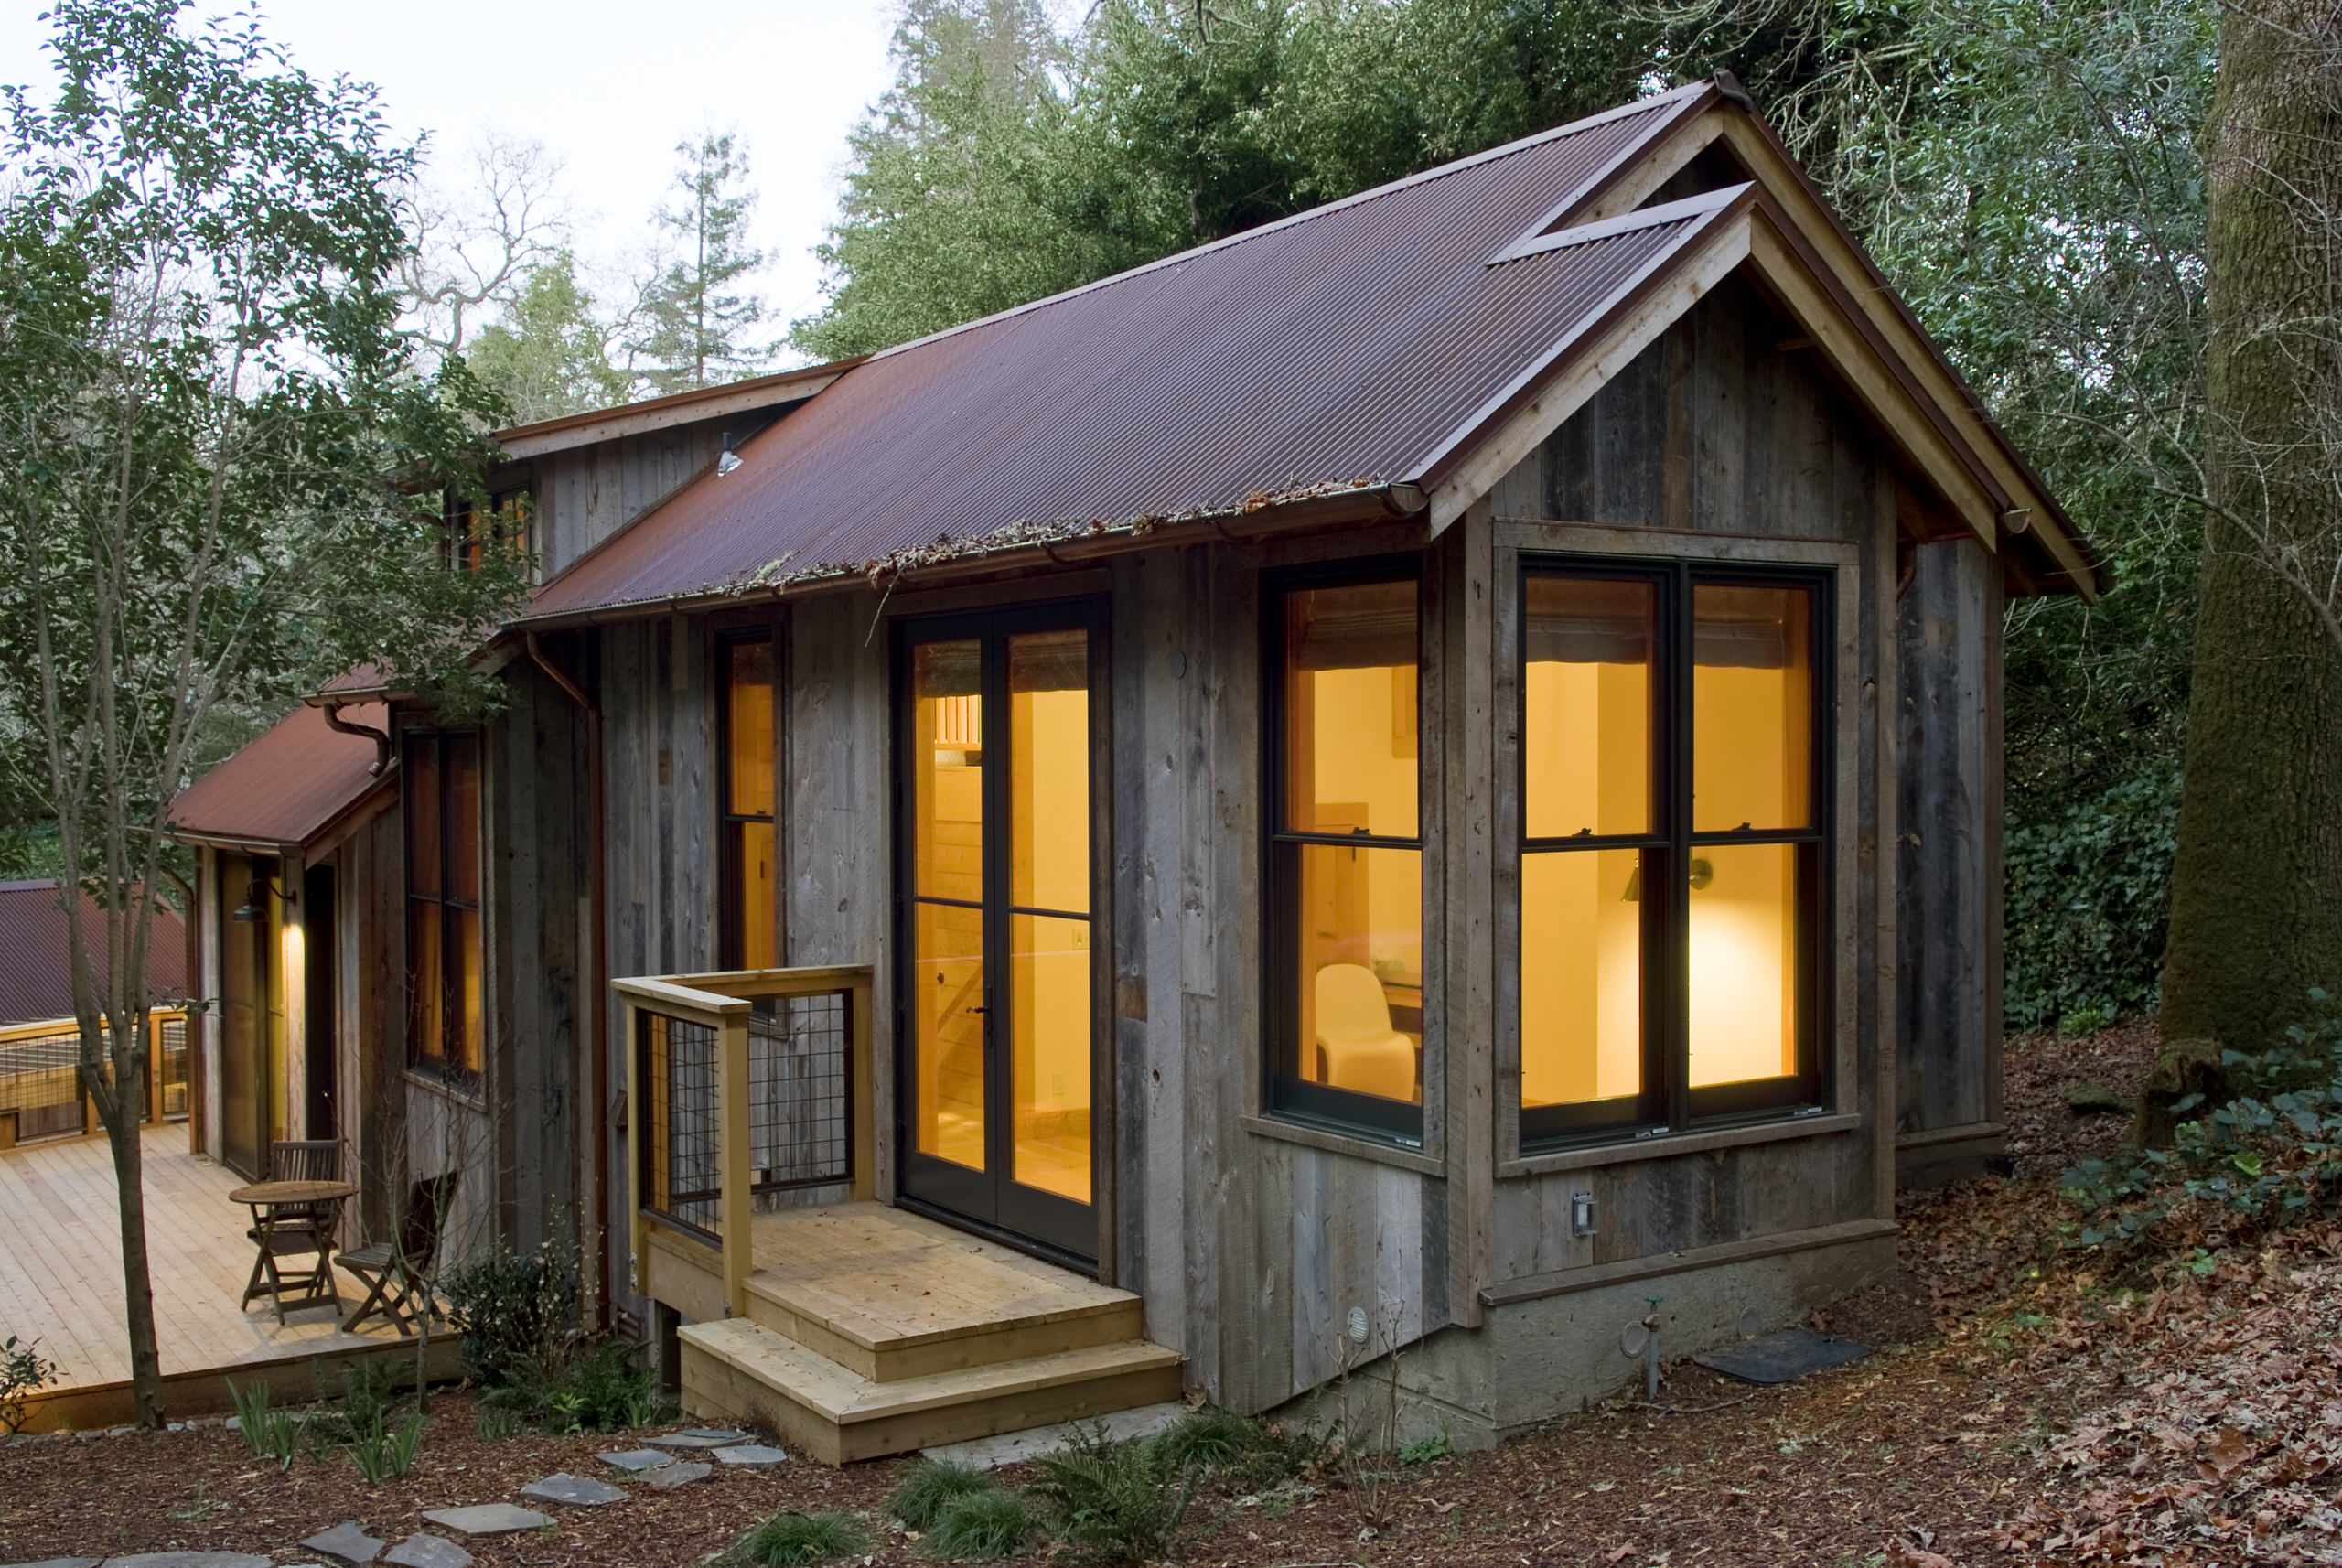 A handcrafted rustic guest cabin | Dotter \u0026 Solfjeld | Small House ...